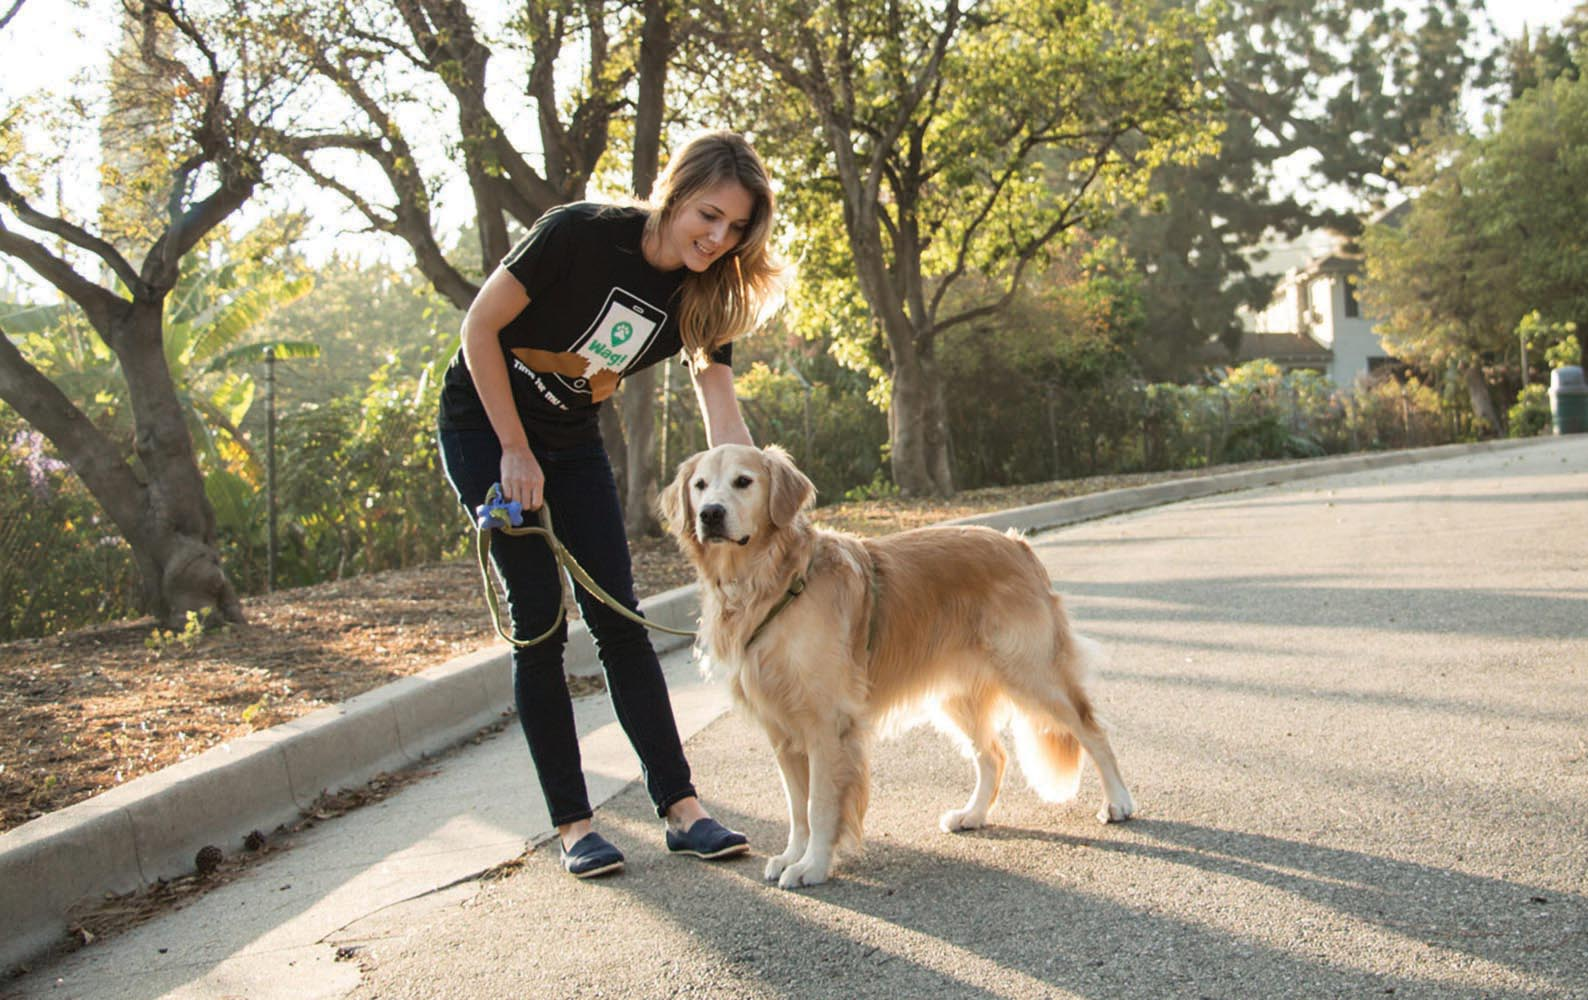 Wag!, a Dog-Walking App, Hooks You Up with Pups and Cash